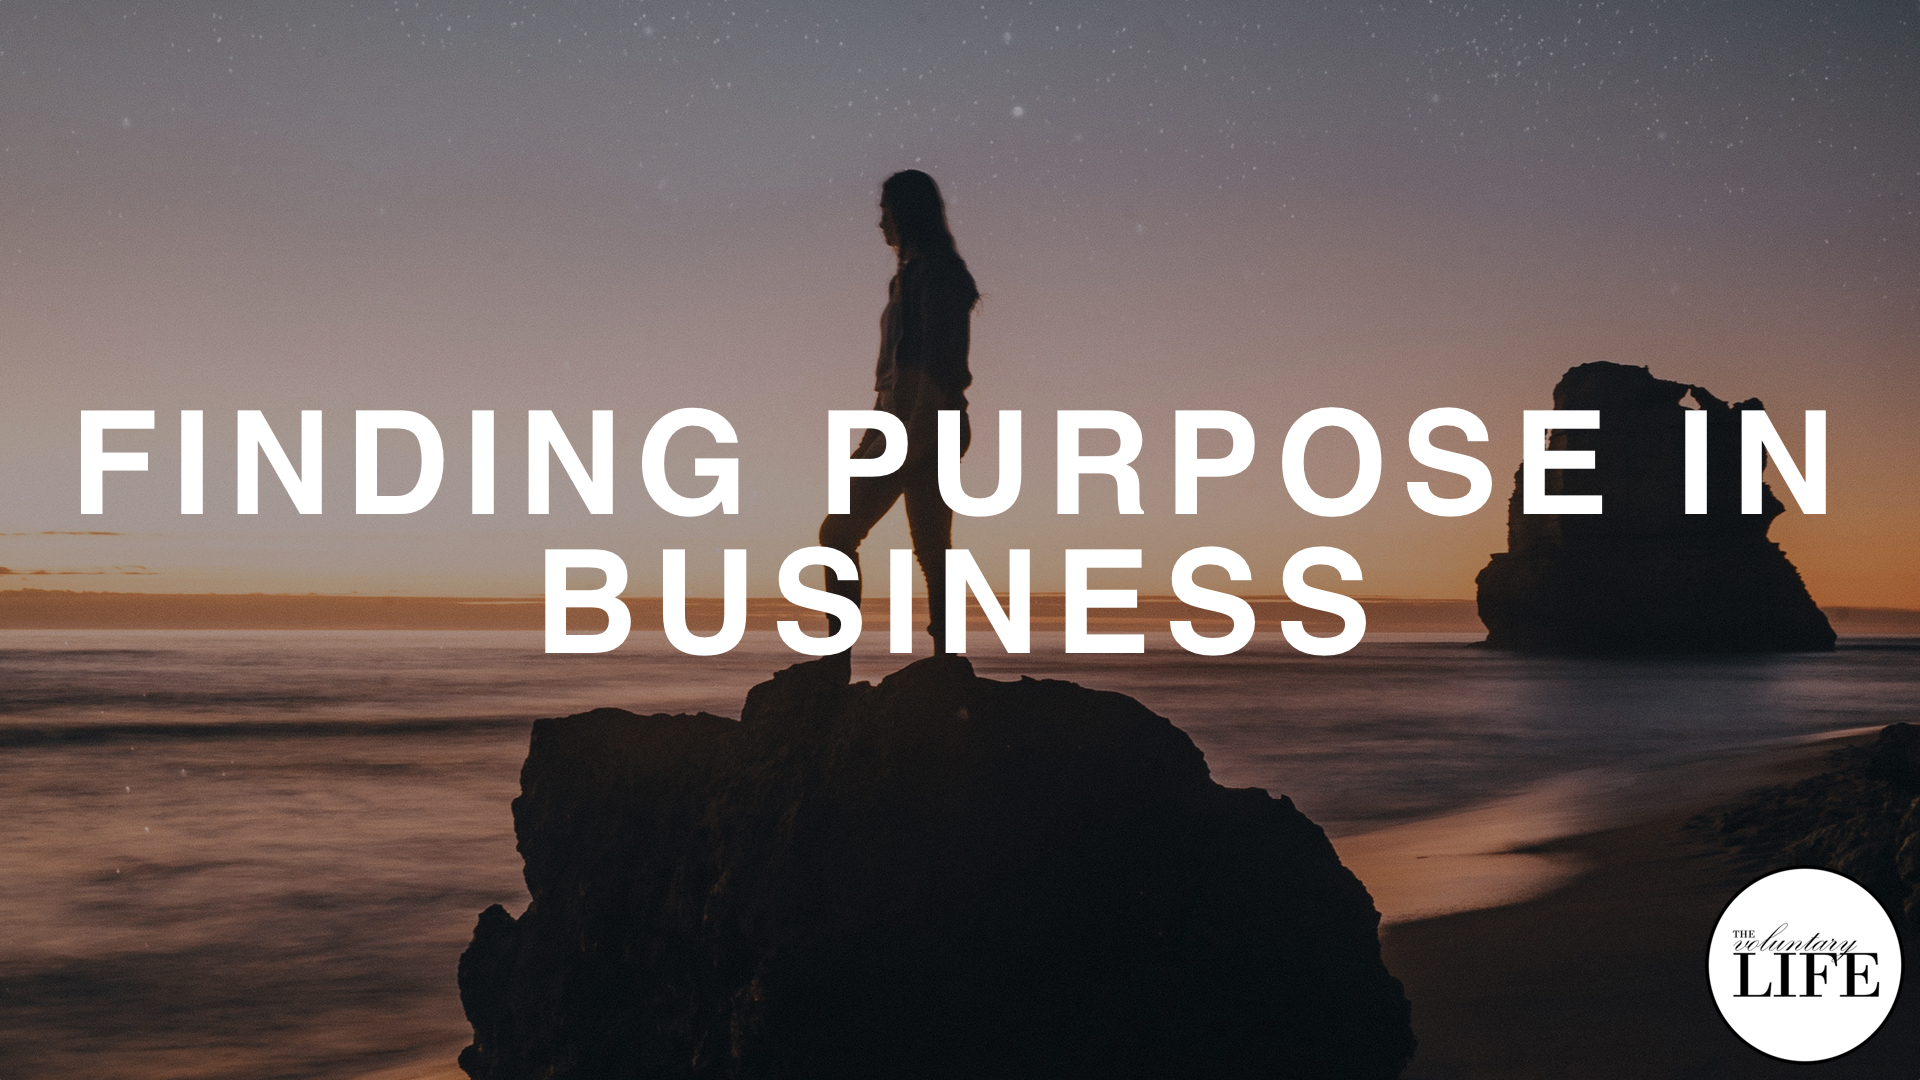 112 What Business Should I Start? Part 2: Finding Purpose